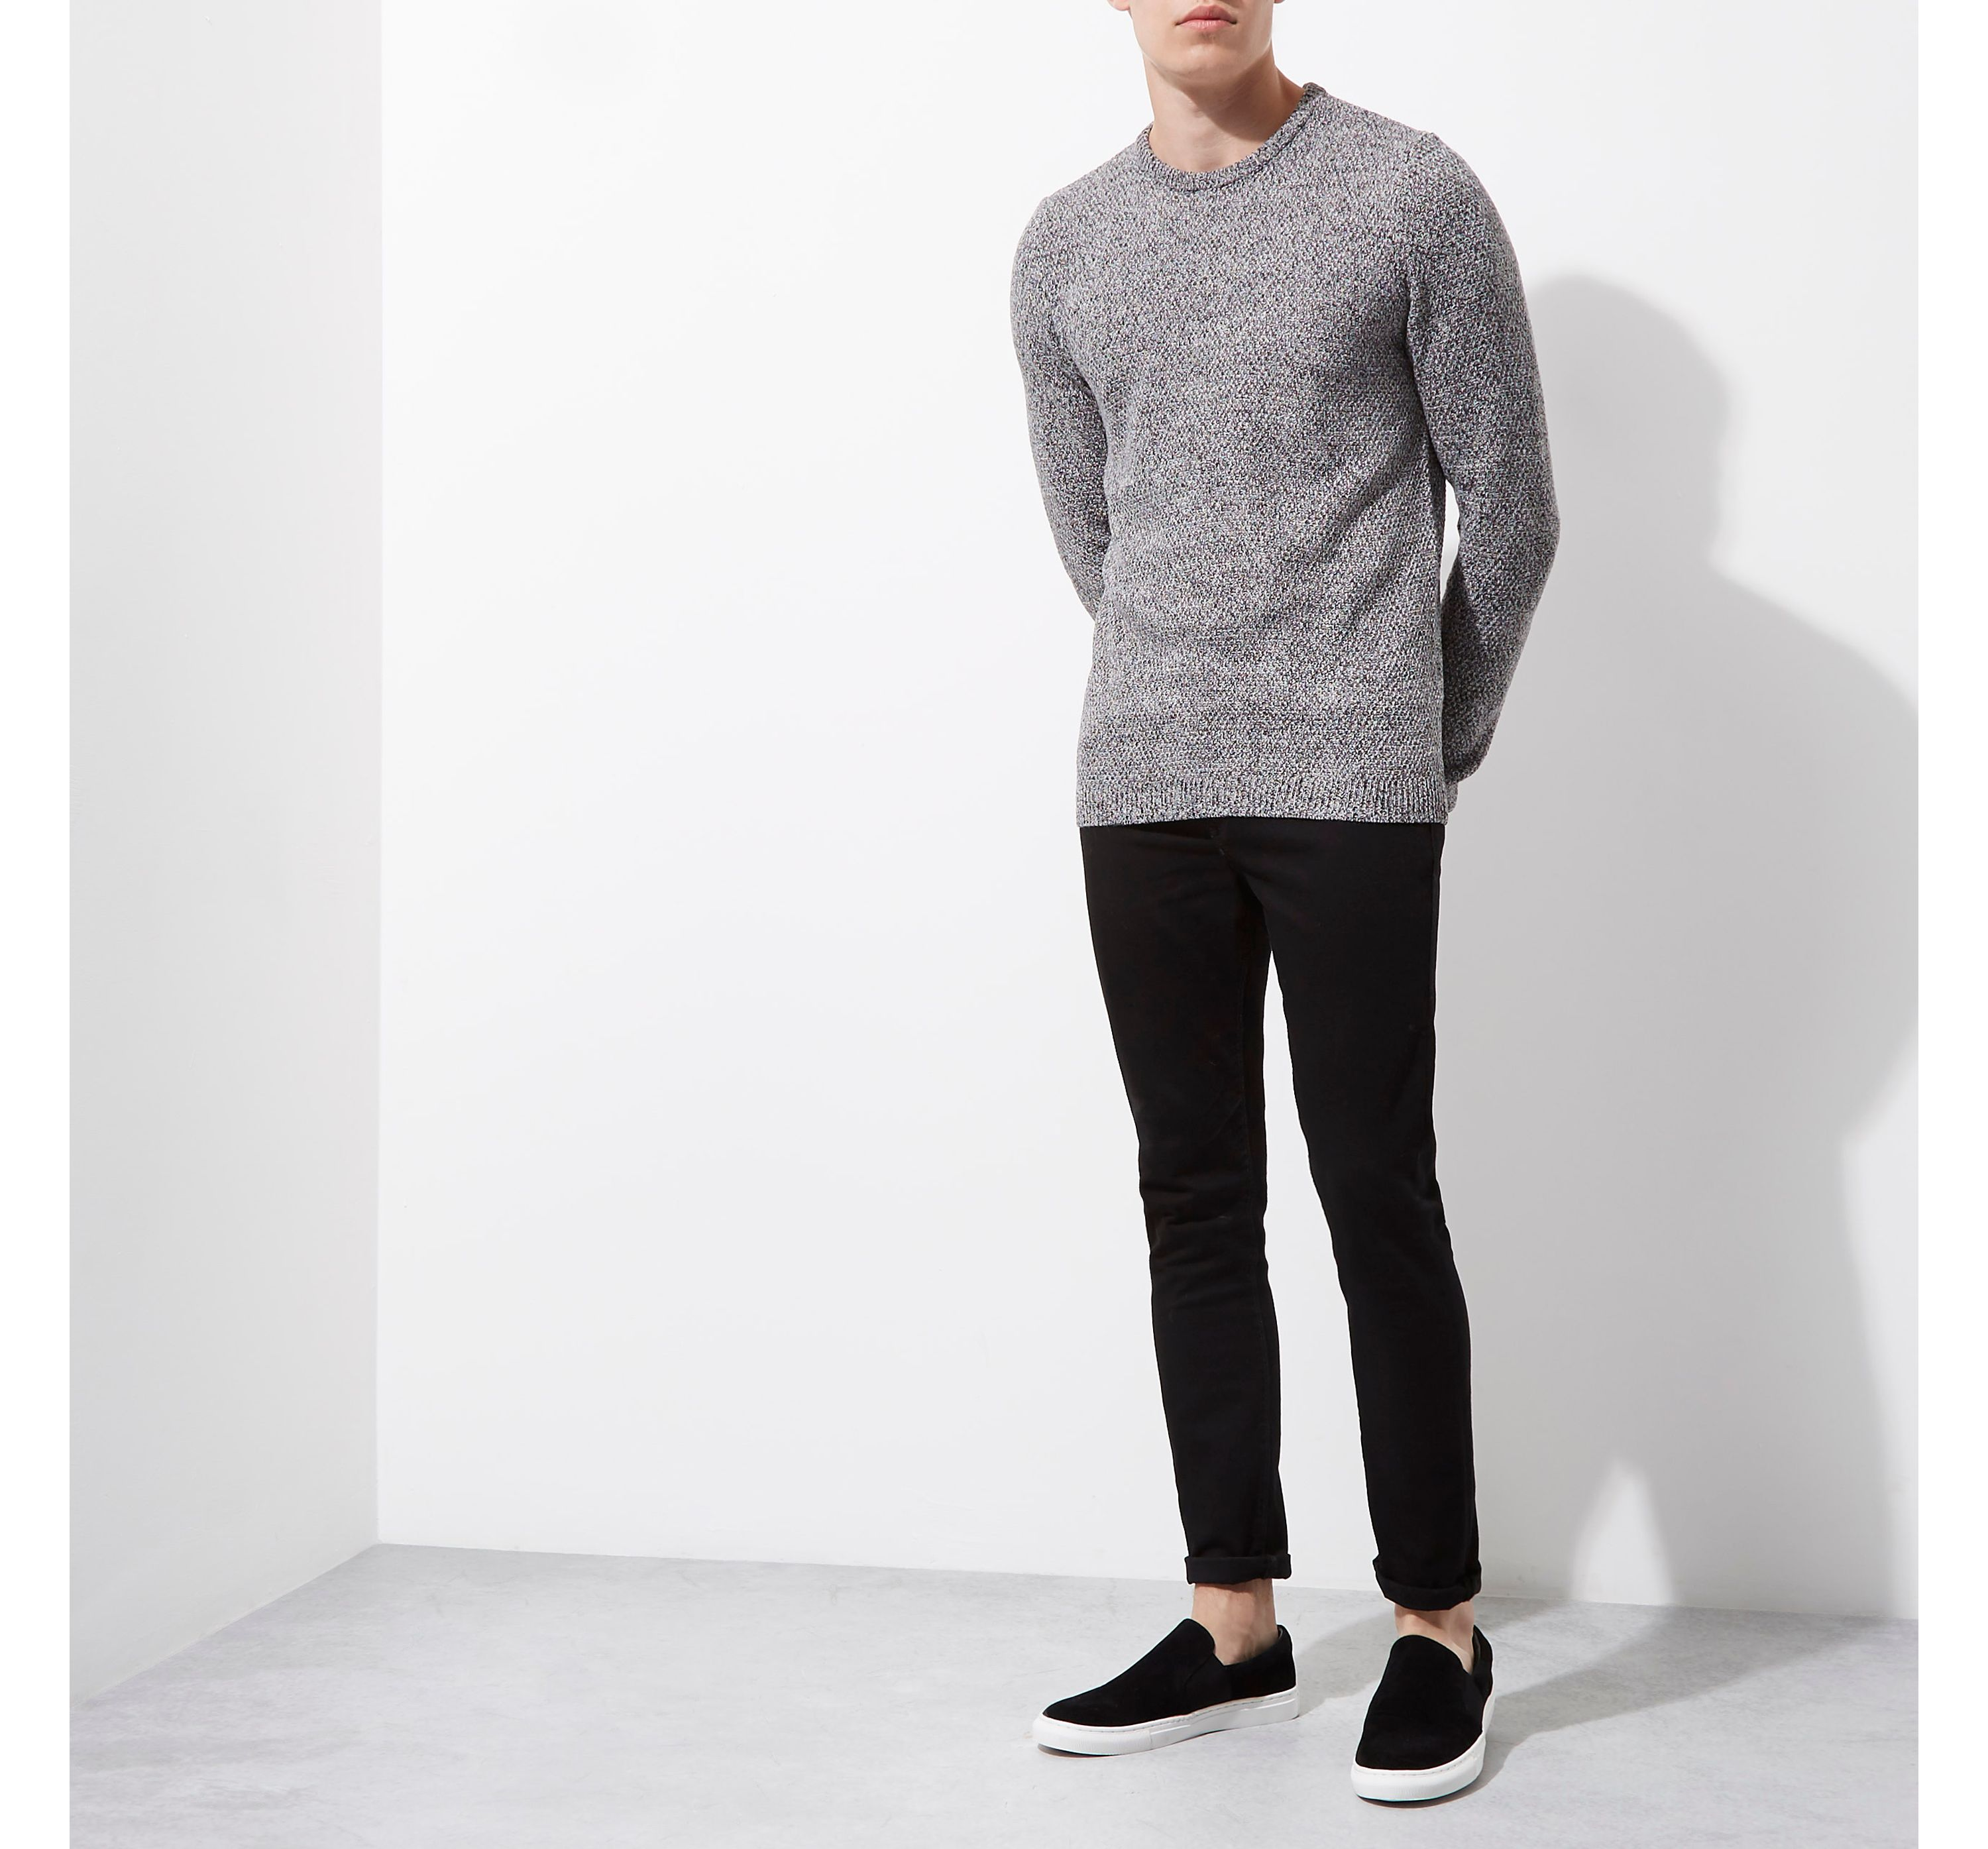 04cf98807c2a Our stylists will find you something similar if you sign up for Thread.  Thread is an online personal styling service for men, ...